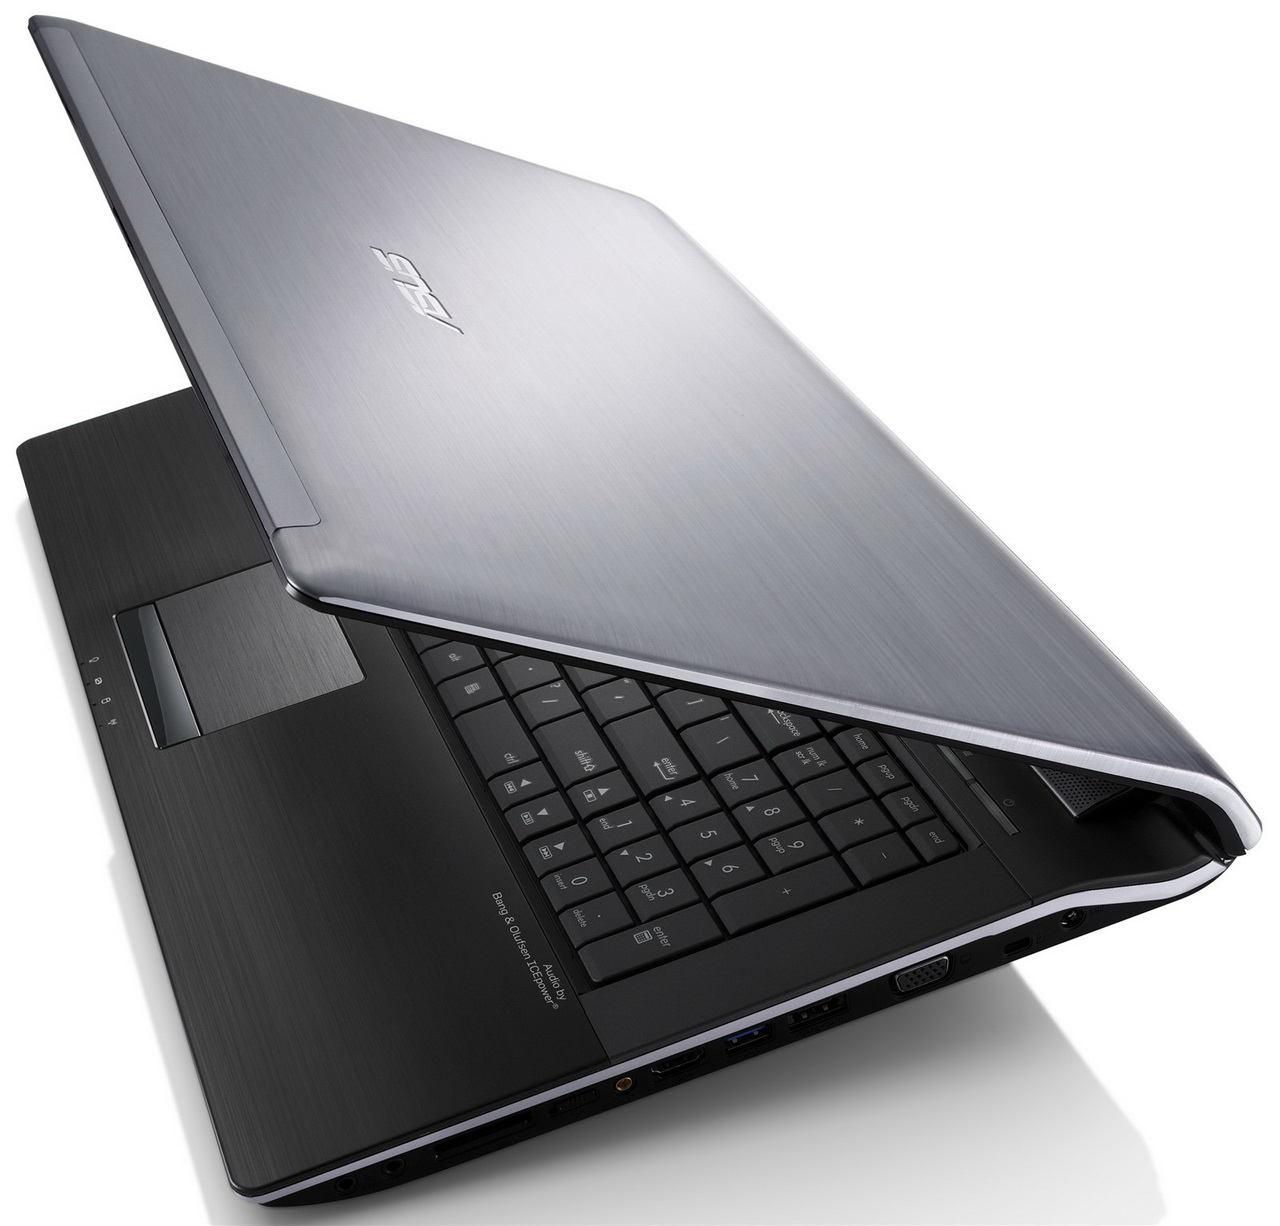 http://1.bp.blogspot.com/-OnpHyBItauo/Tnfpe_9IX1I/AAAAAAAAAGc/wmhCgwuEHAY/s1600/17.3-Inch-ASUS-N73SV-A1-Entertainment-Laptop-with-Core-i7.jpg